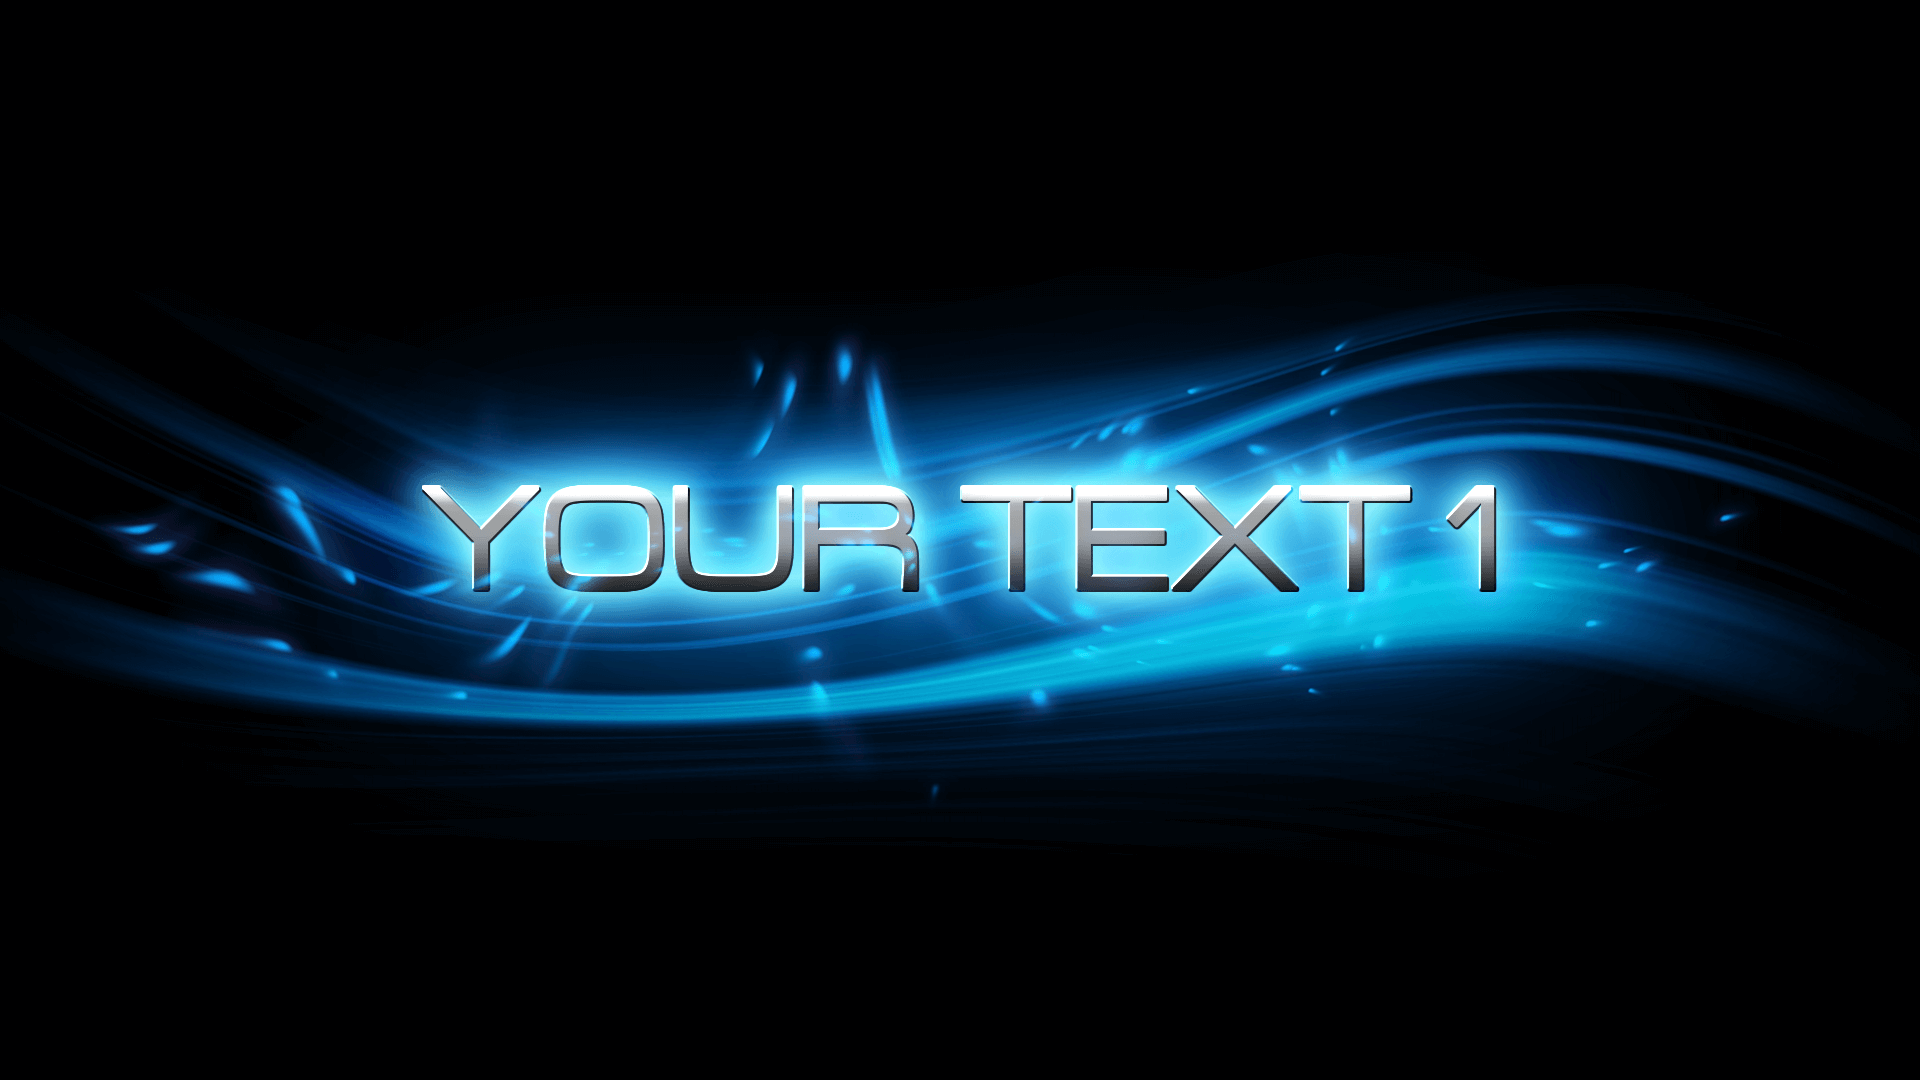 Customize the text for Blue Bloom Titles to view your free intro movie.